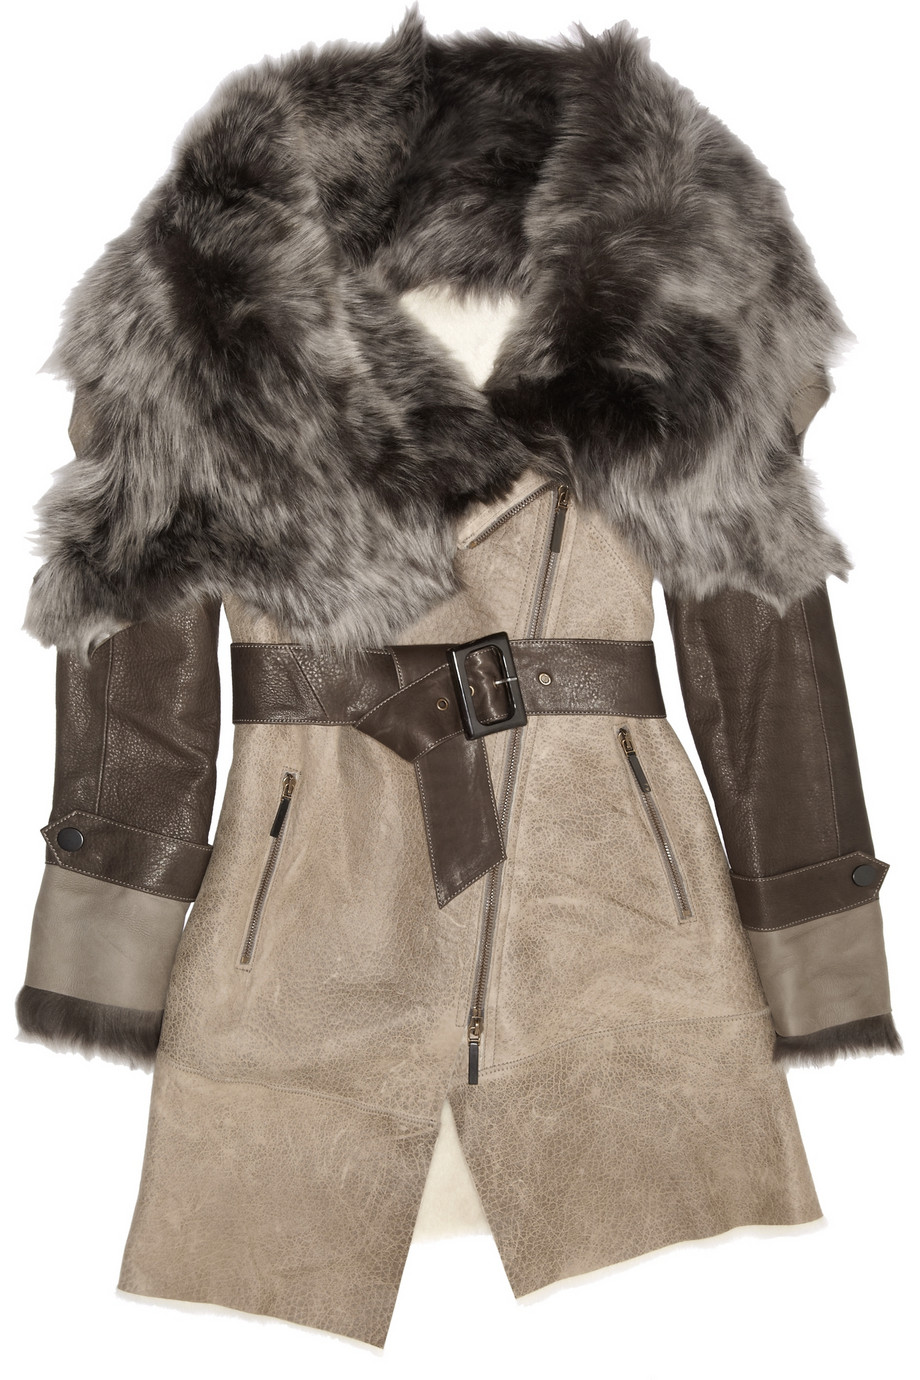 Karl donoghue Belted Shearling-Trimmed Leather Jacket in Gray | Lyst